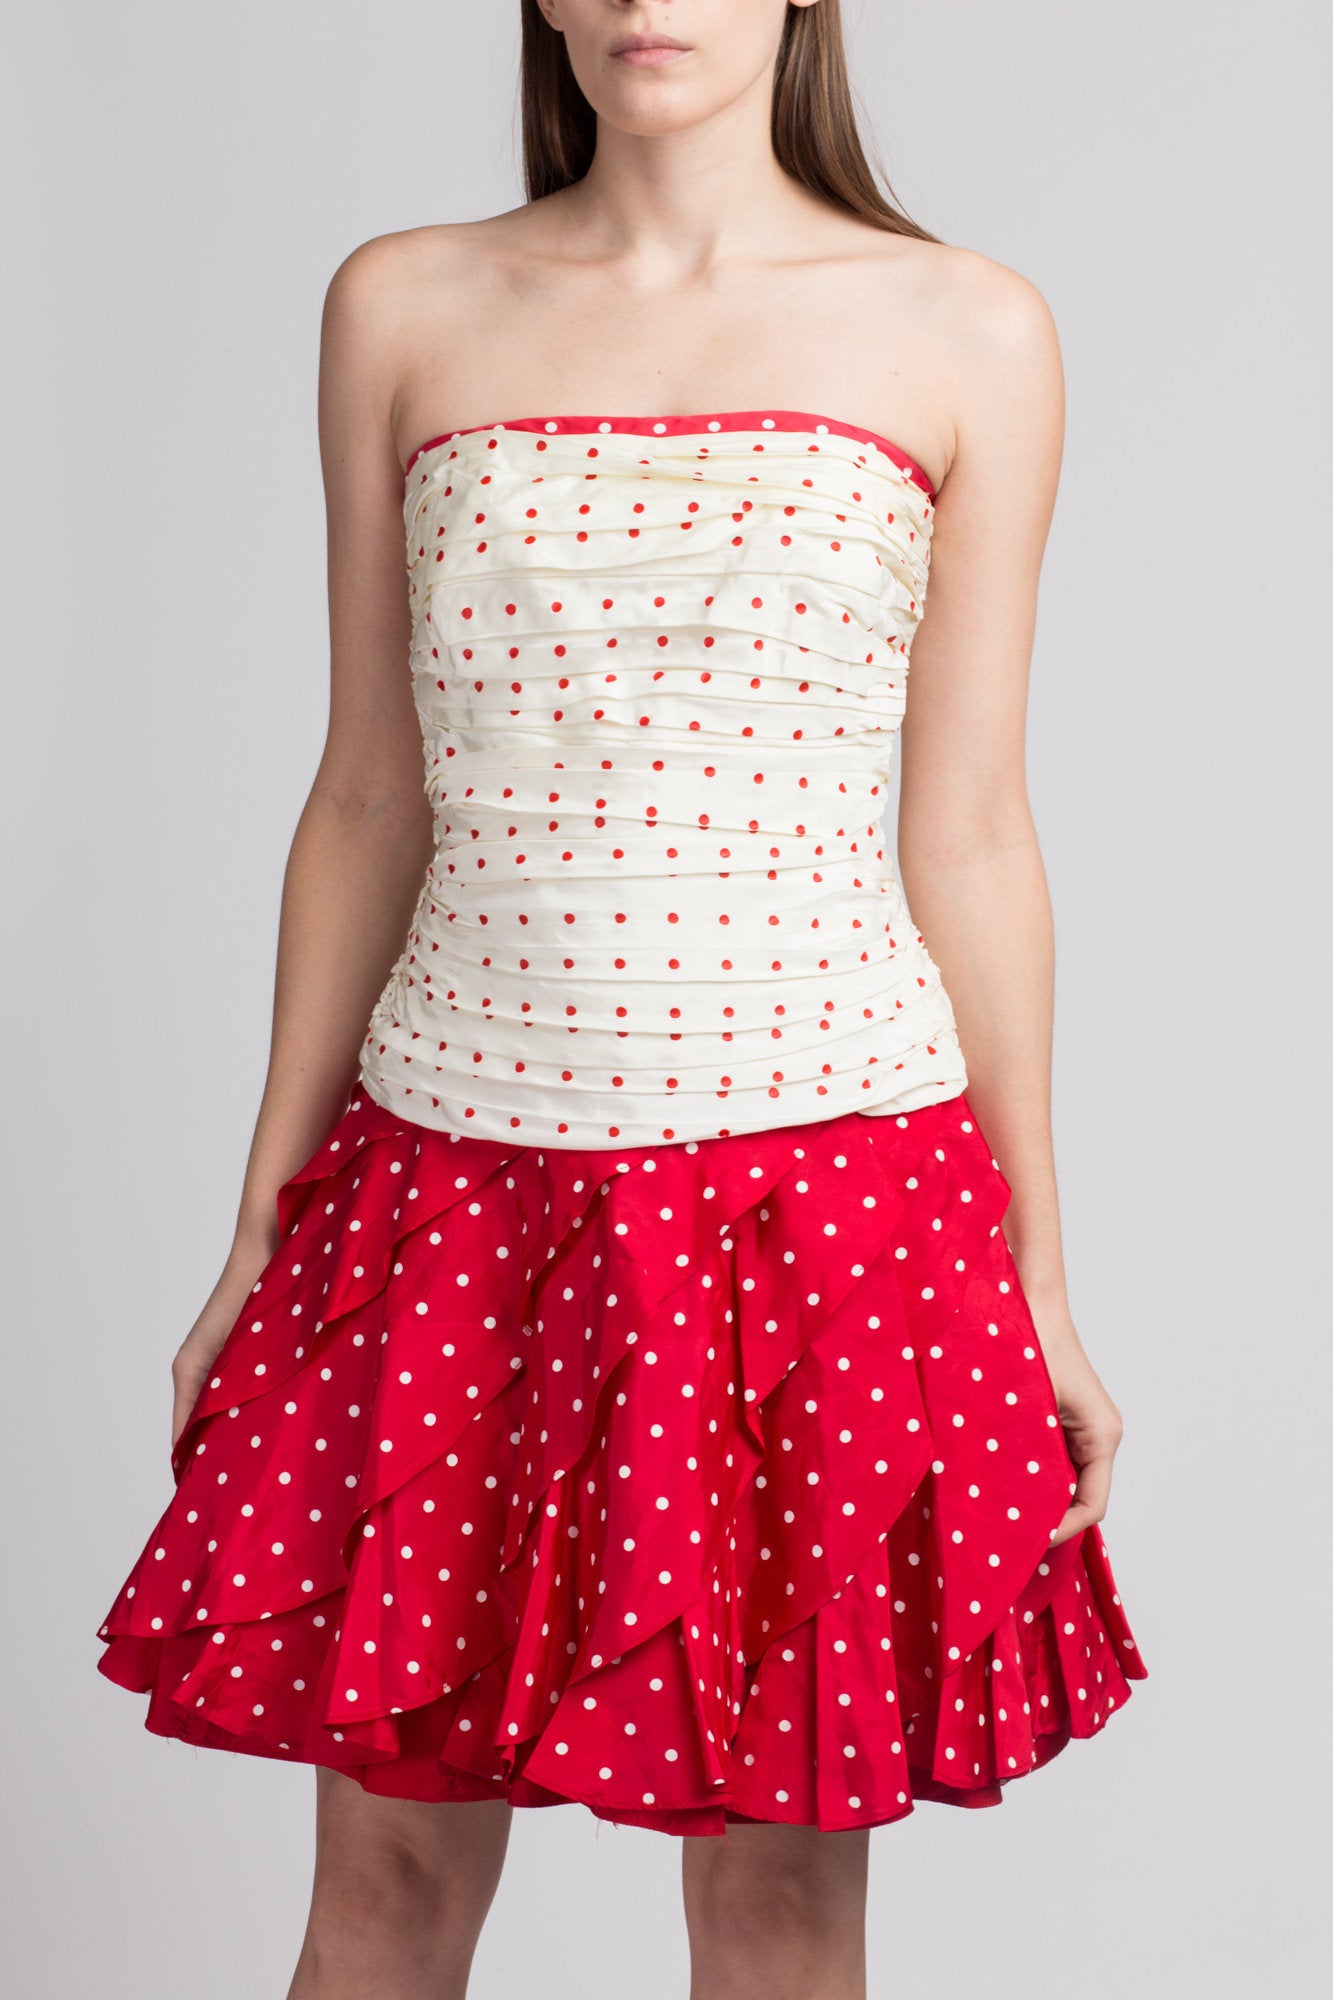 80s Tadashi Polka Dot Party Dress - XS to Small